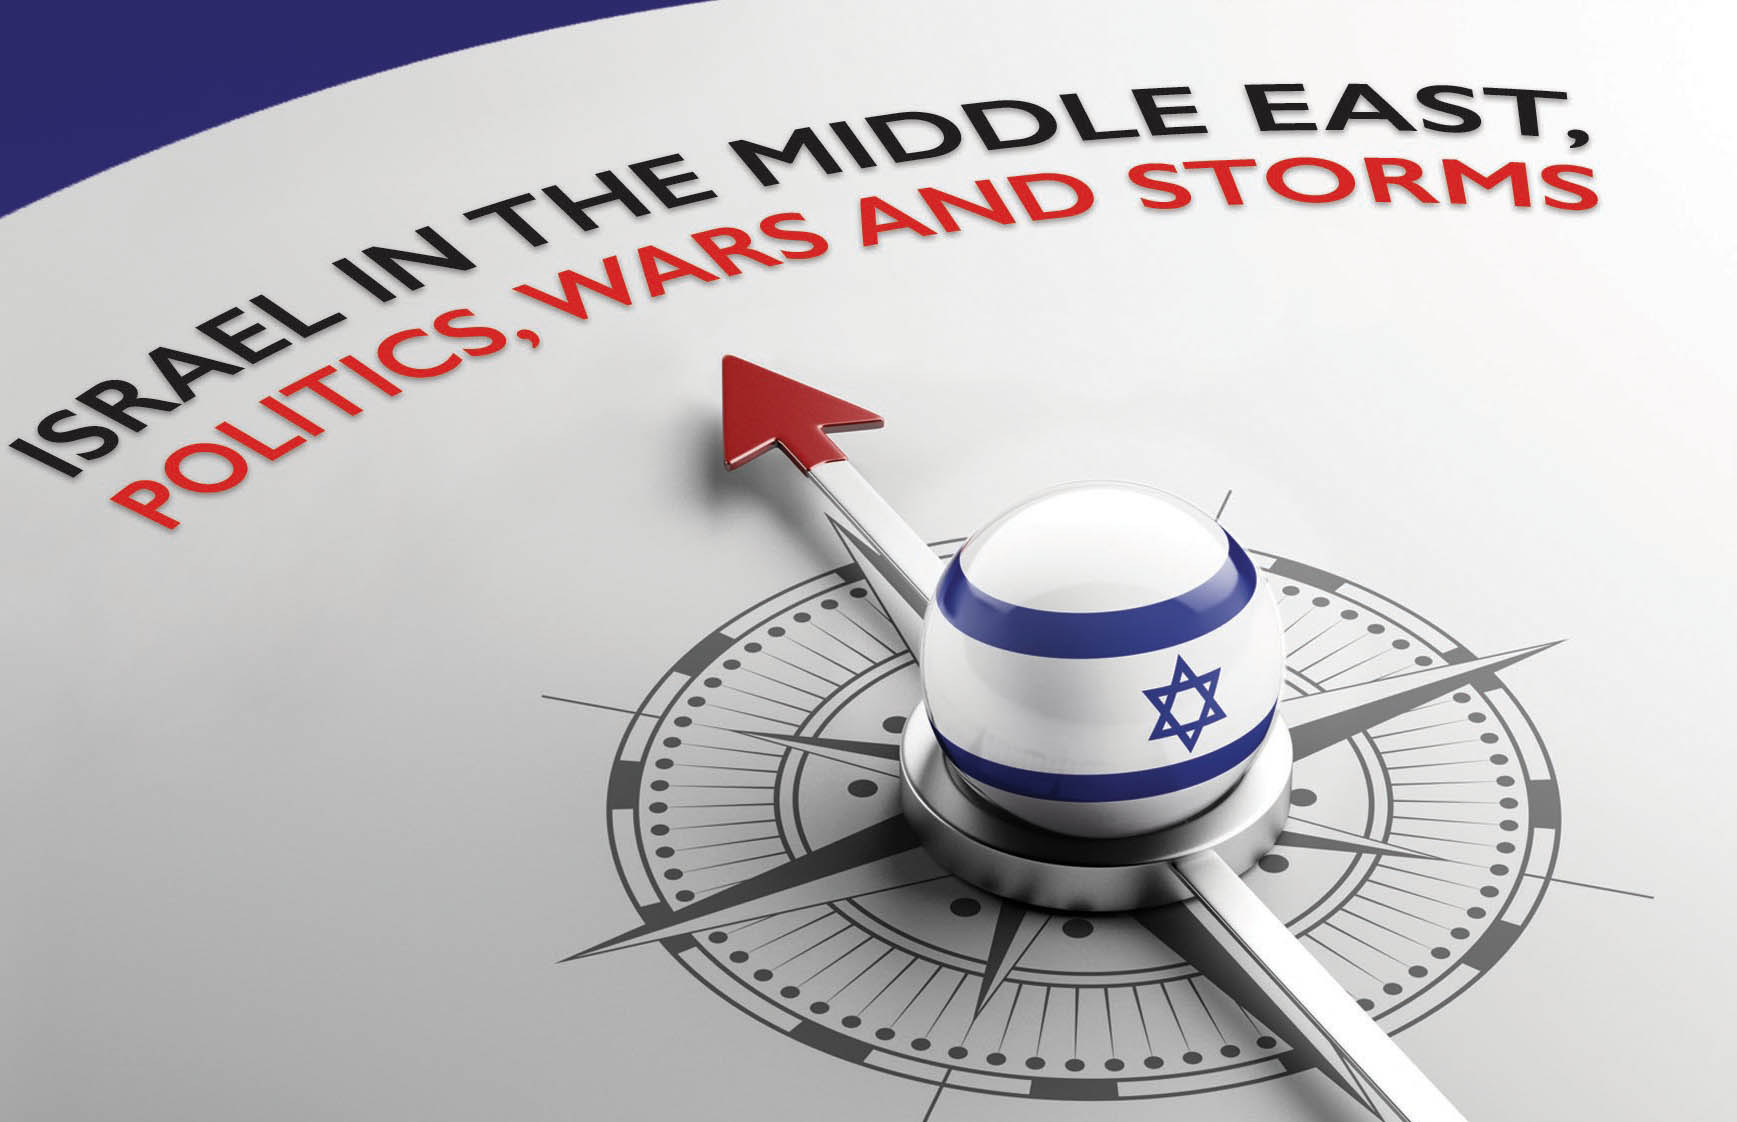 Israel in the Middle East, Politics, Wars and Storms